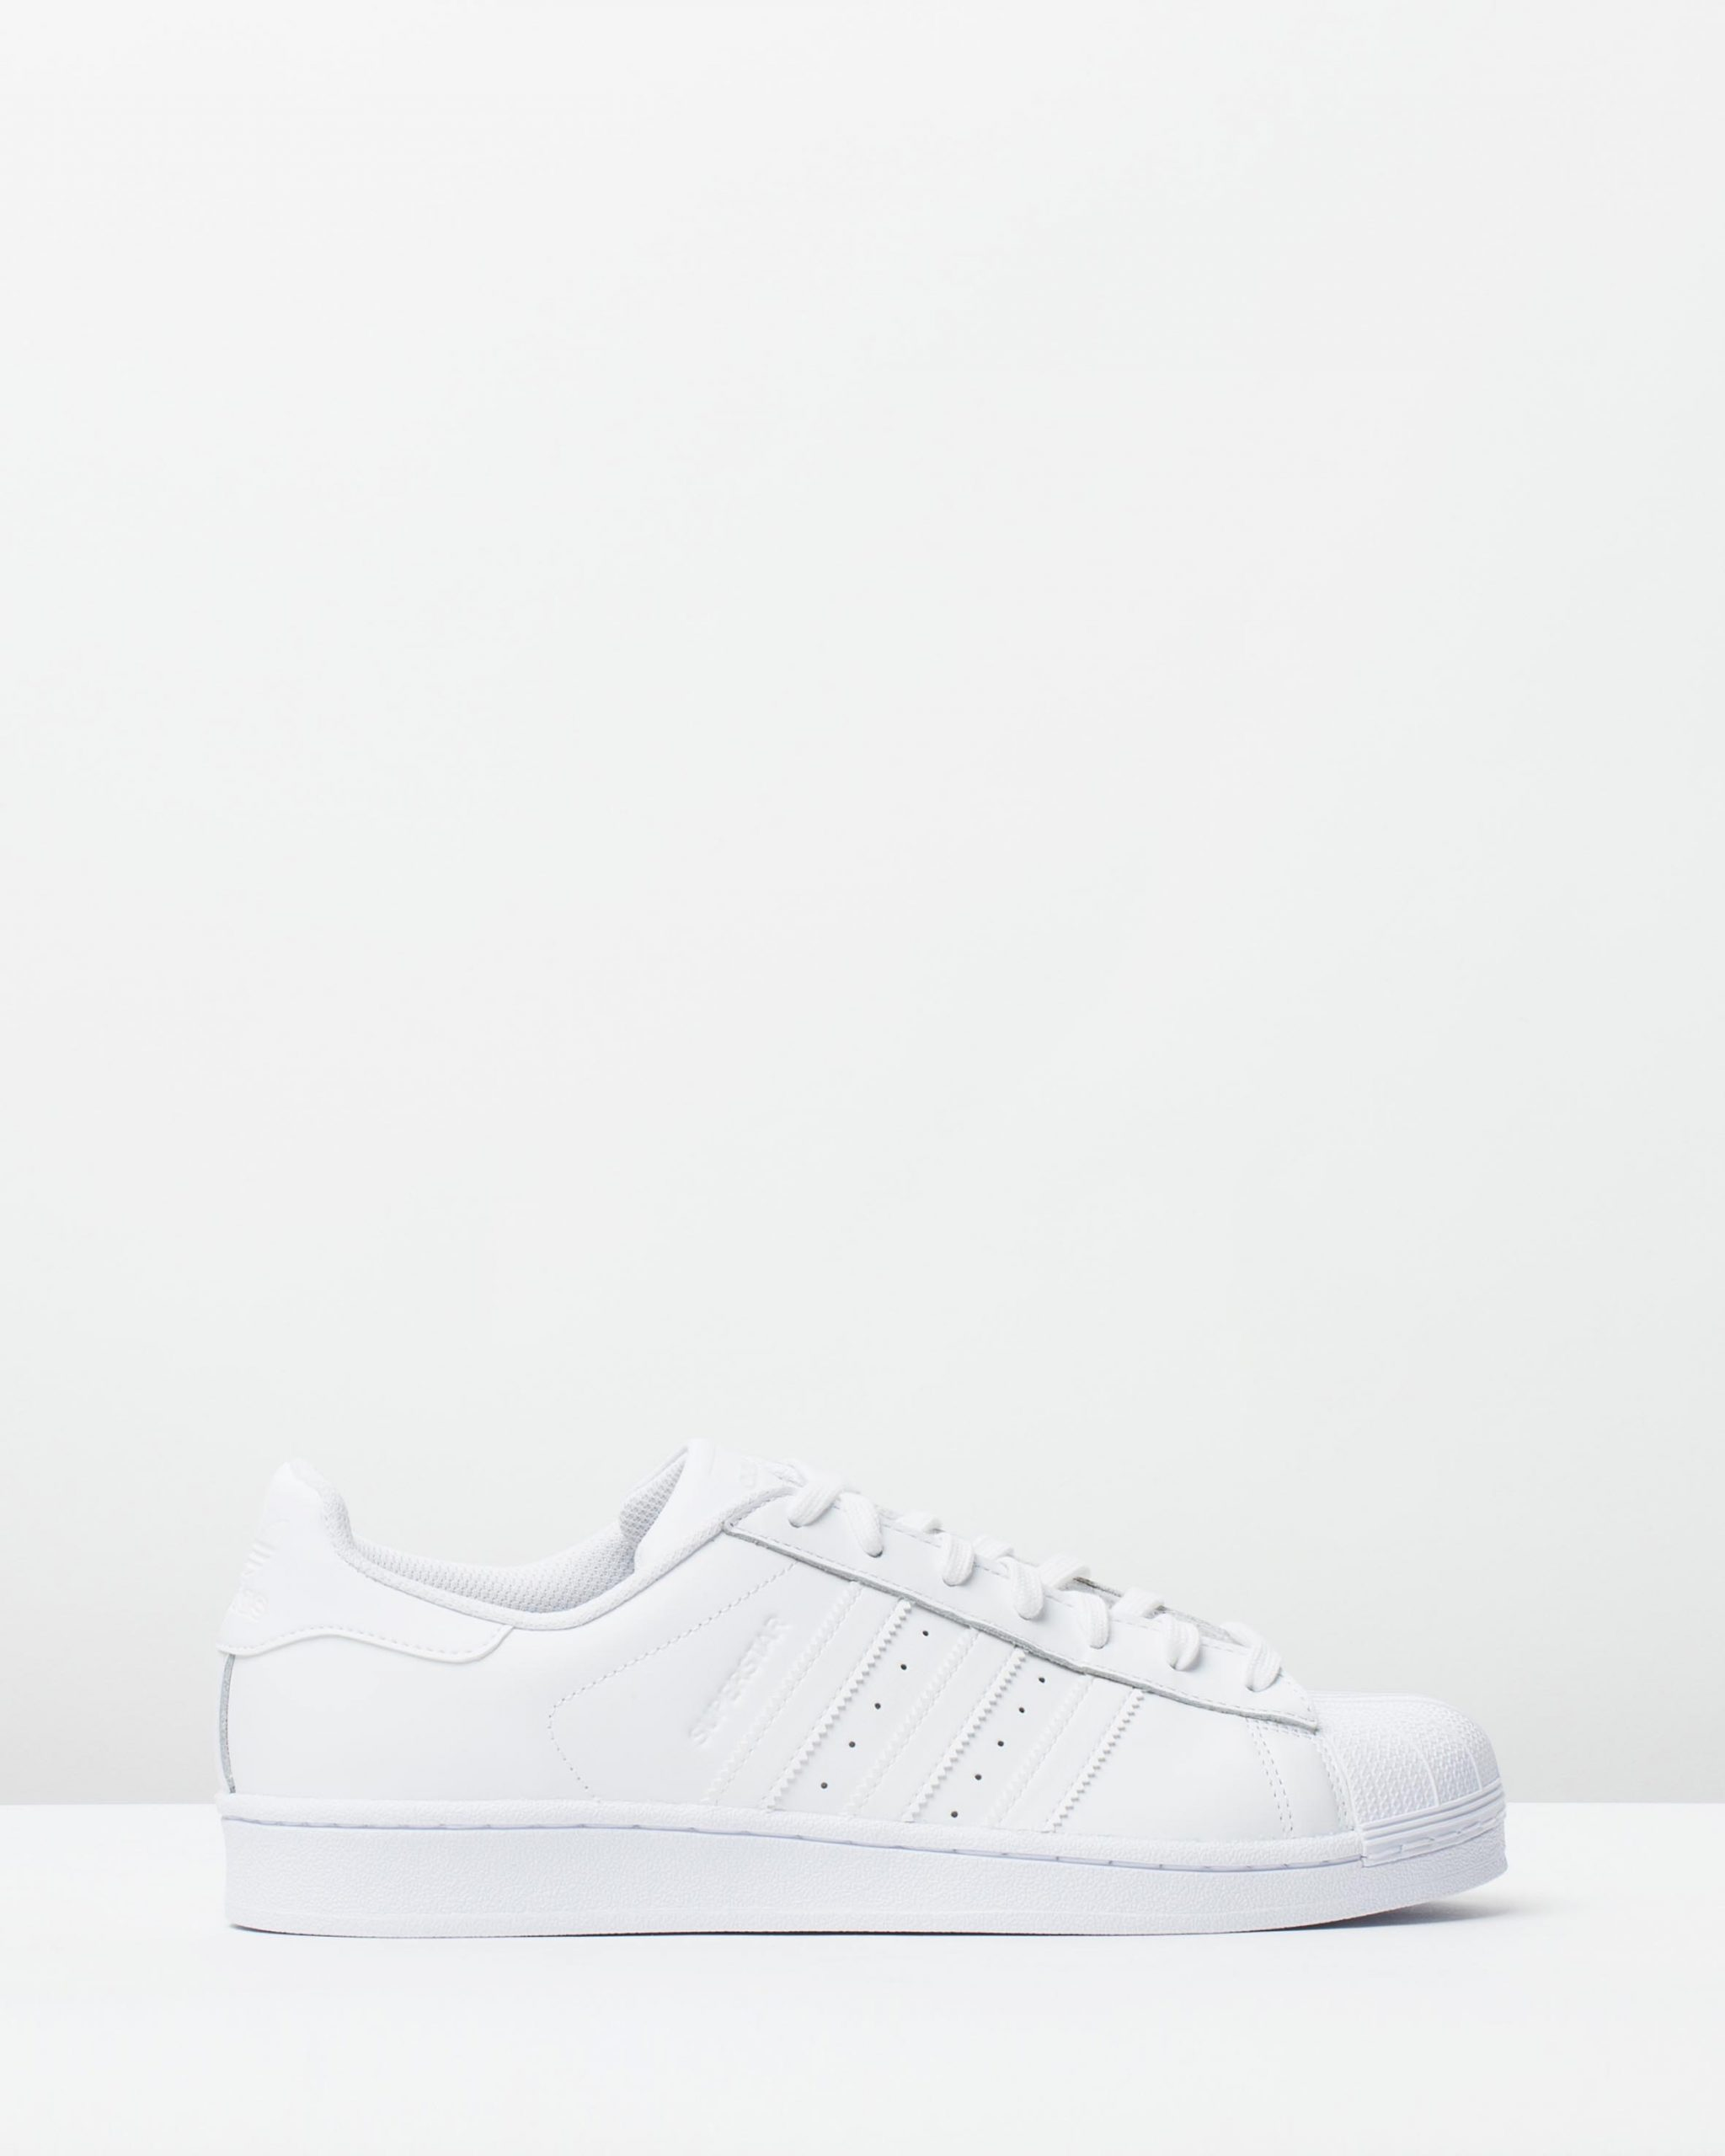 Adidas Originals Men's Superstar White